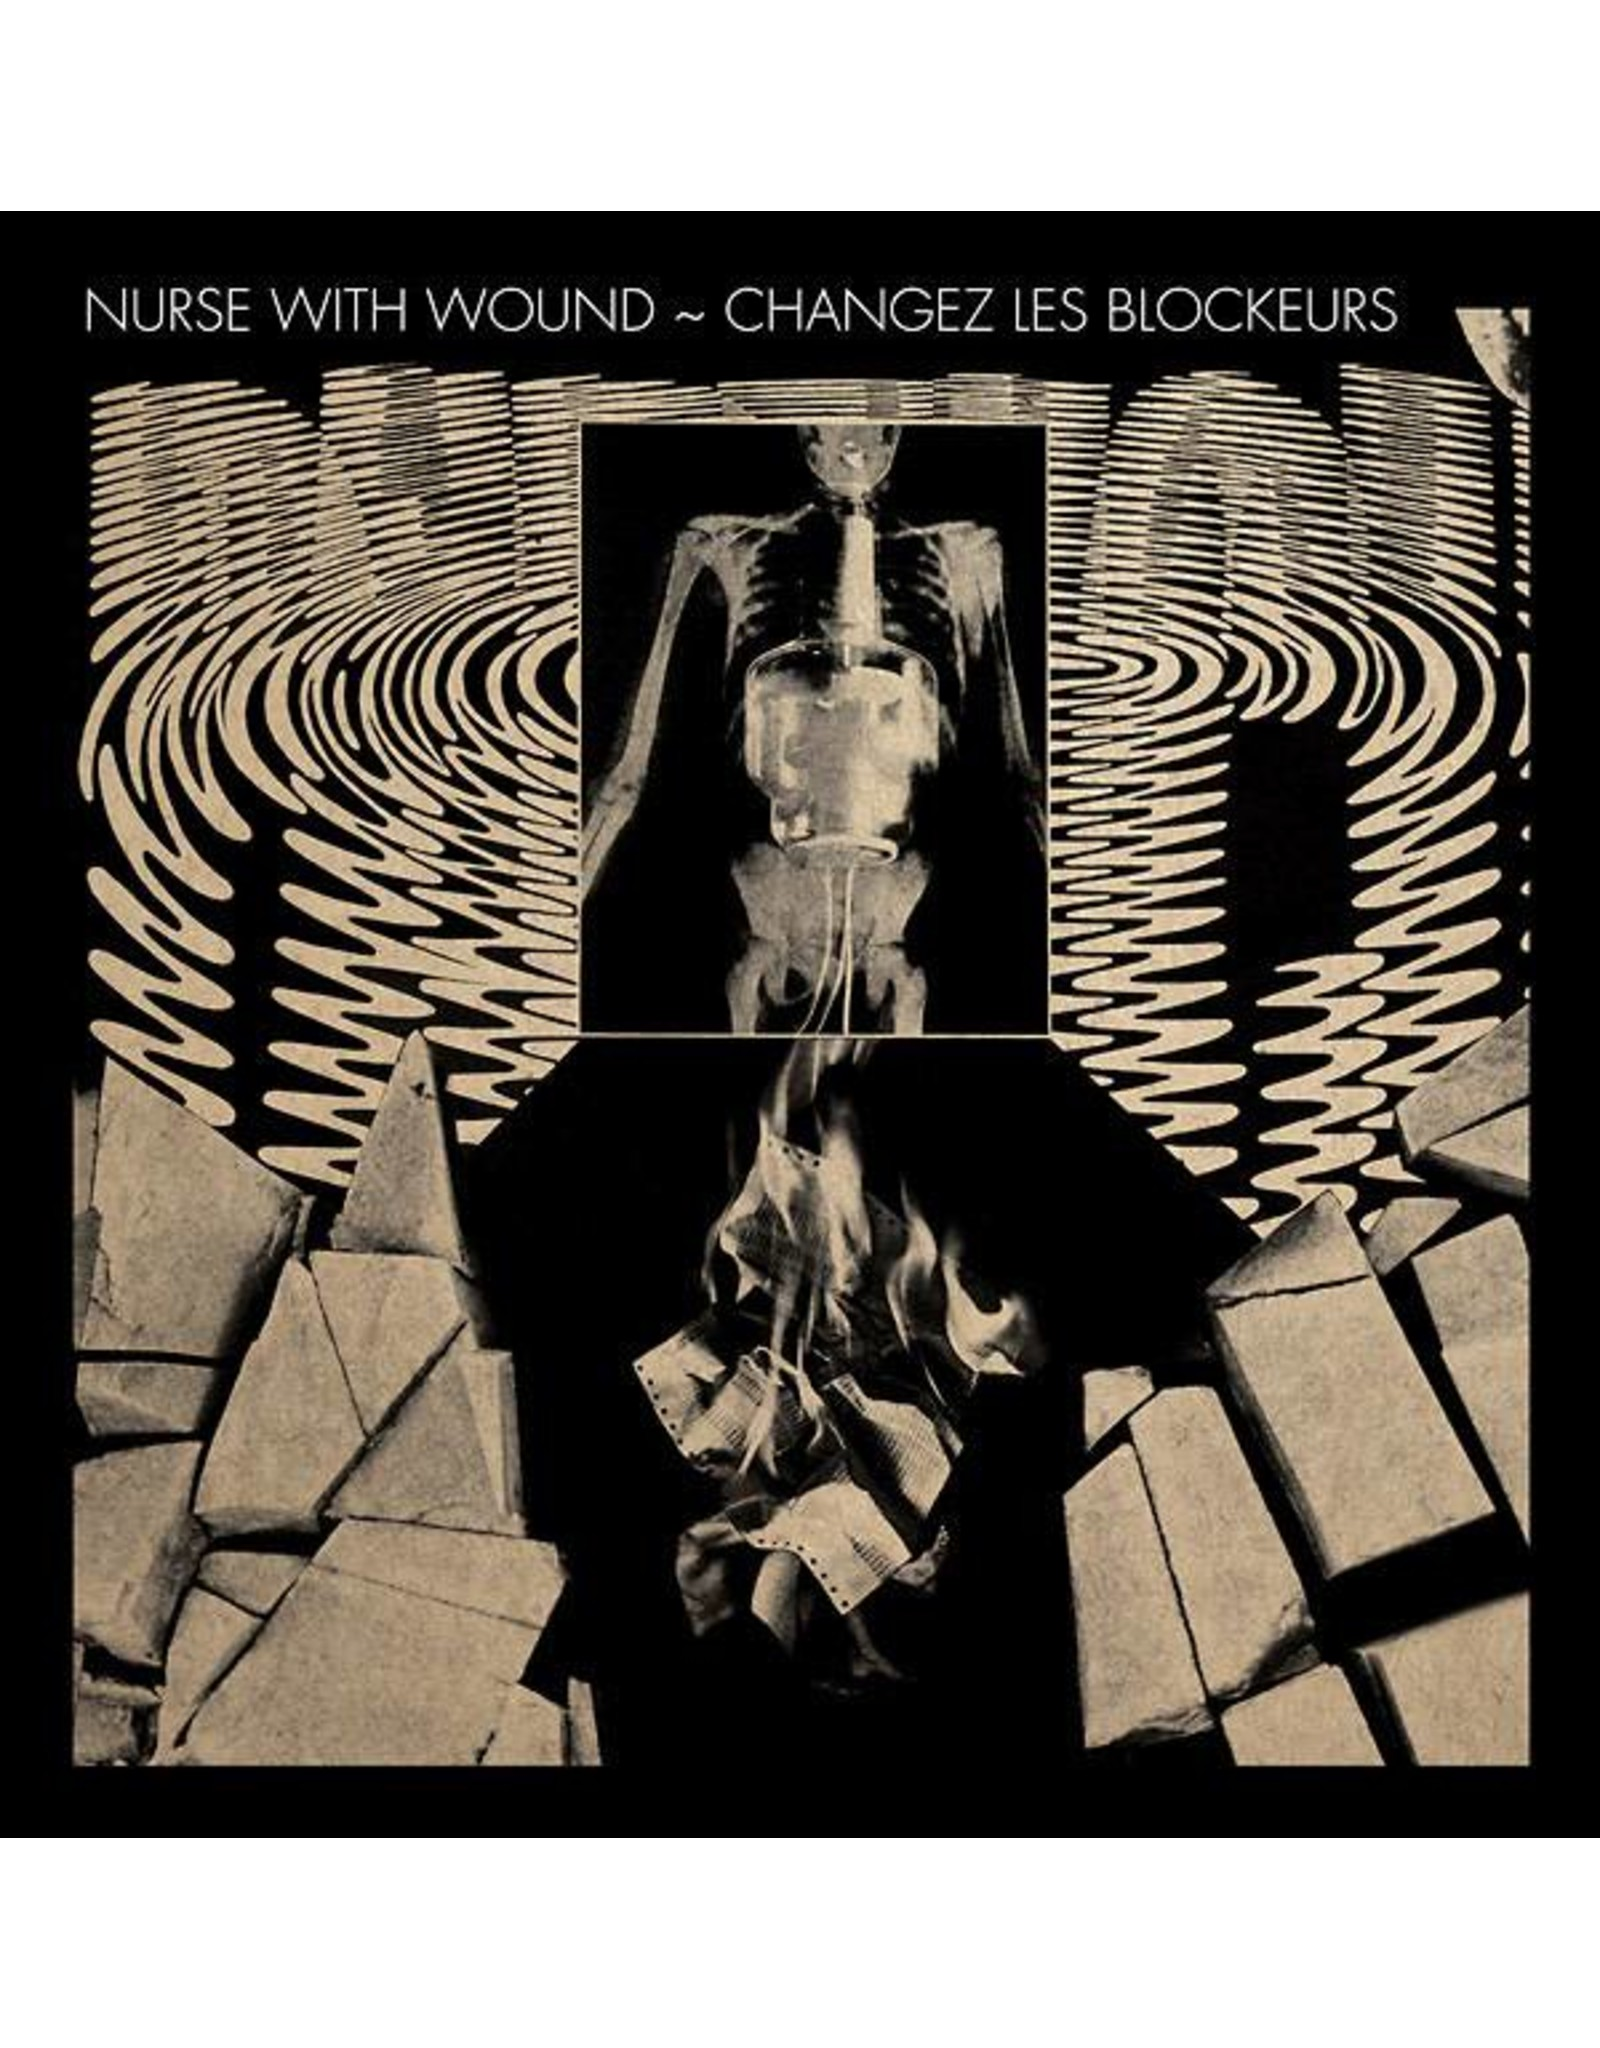 Dirter Nurse With Wound Plays The New Blockaders: Changez Les Blockeurs LP